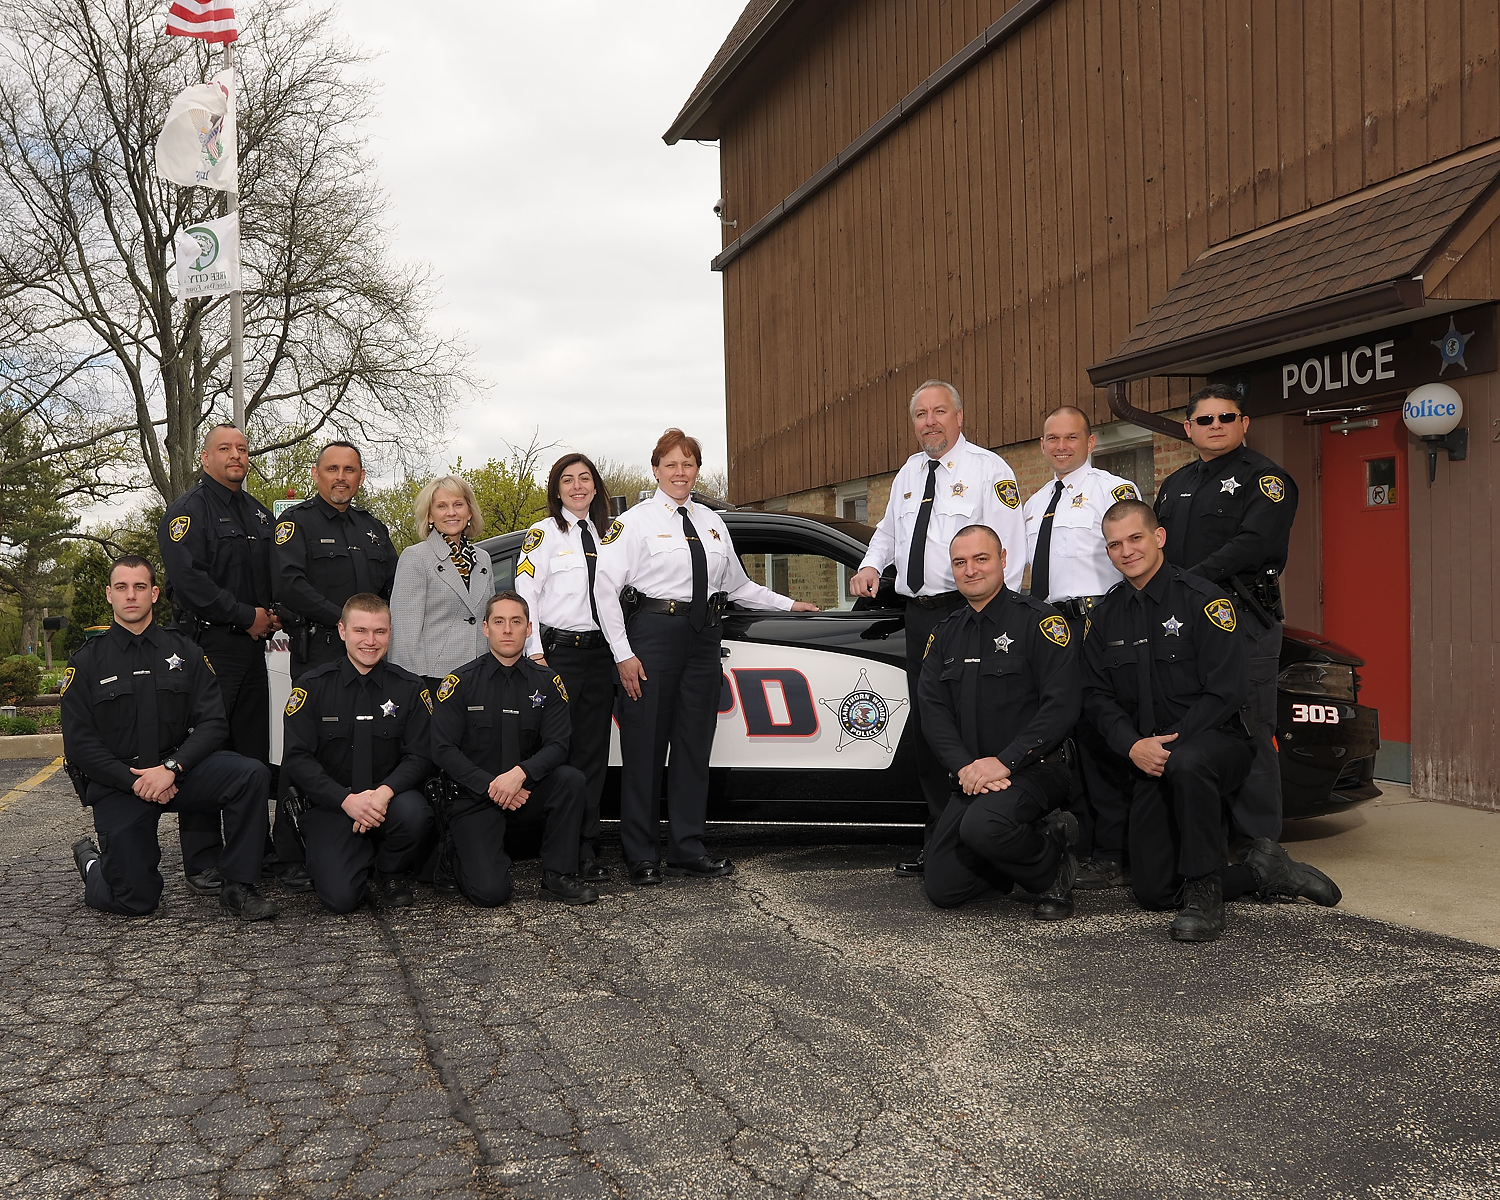 hawthorn woods il official website police department